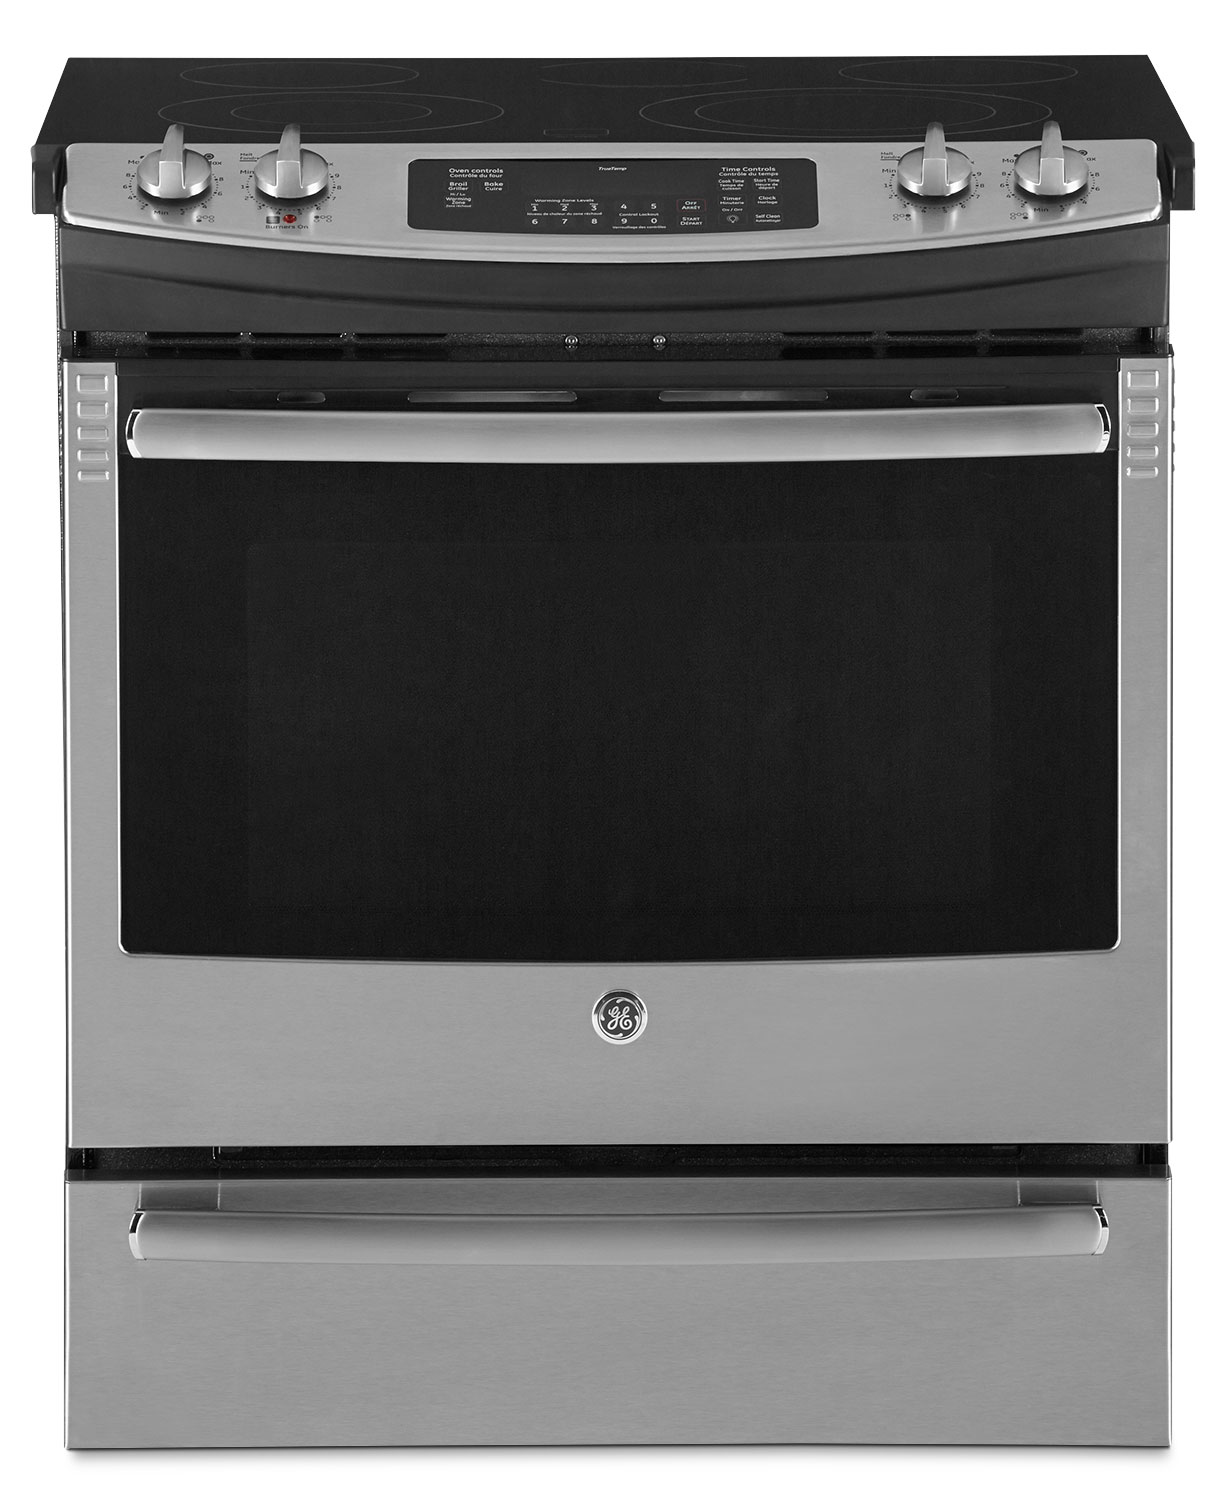 GE 5.2 Cu. Ft. Slide-In Electric Range – JCS630SFSS